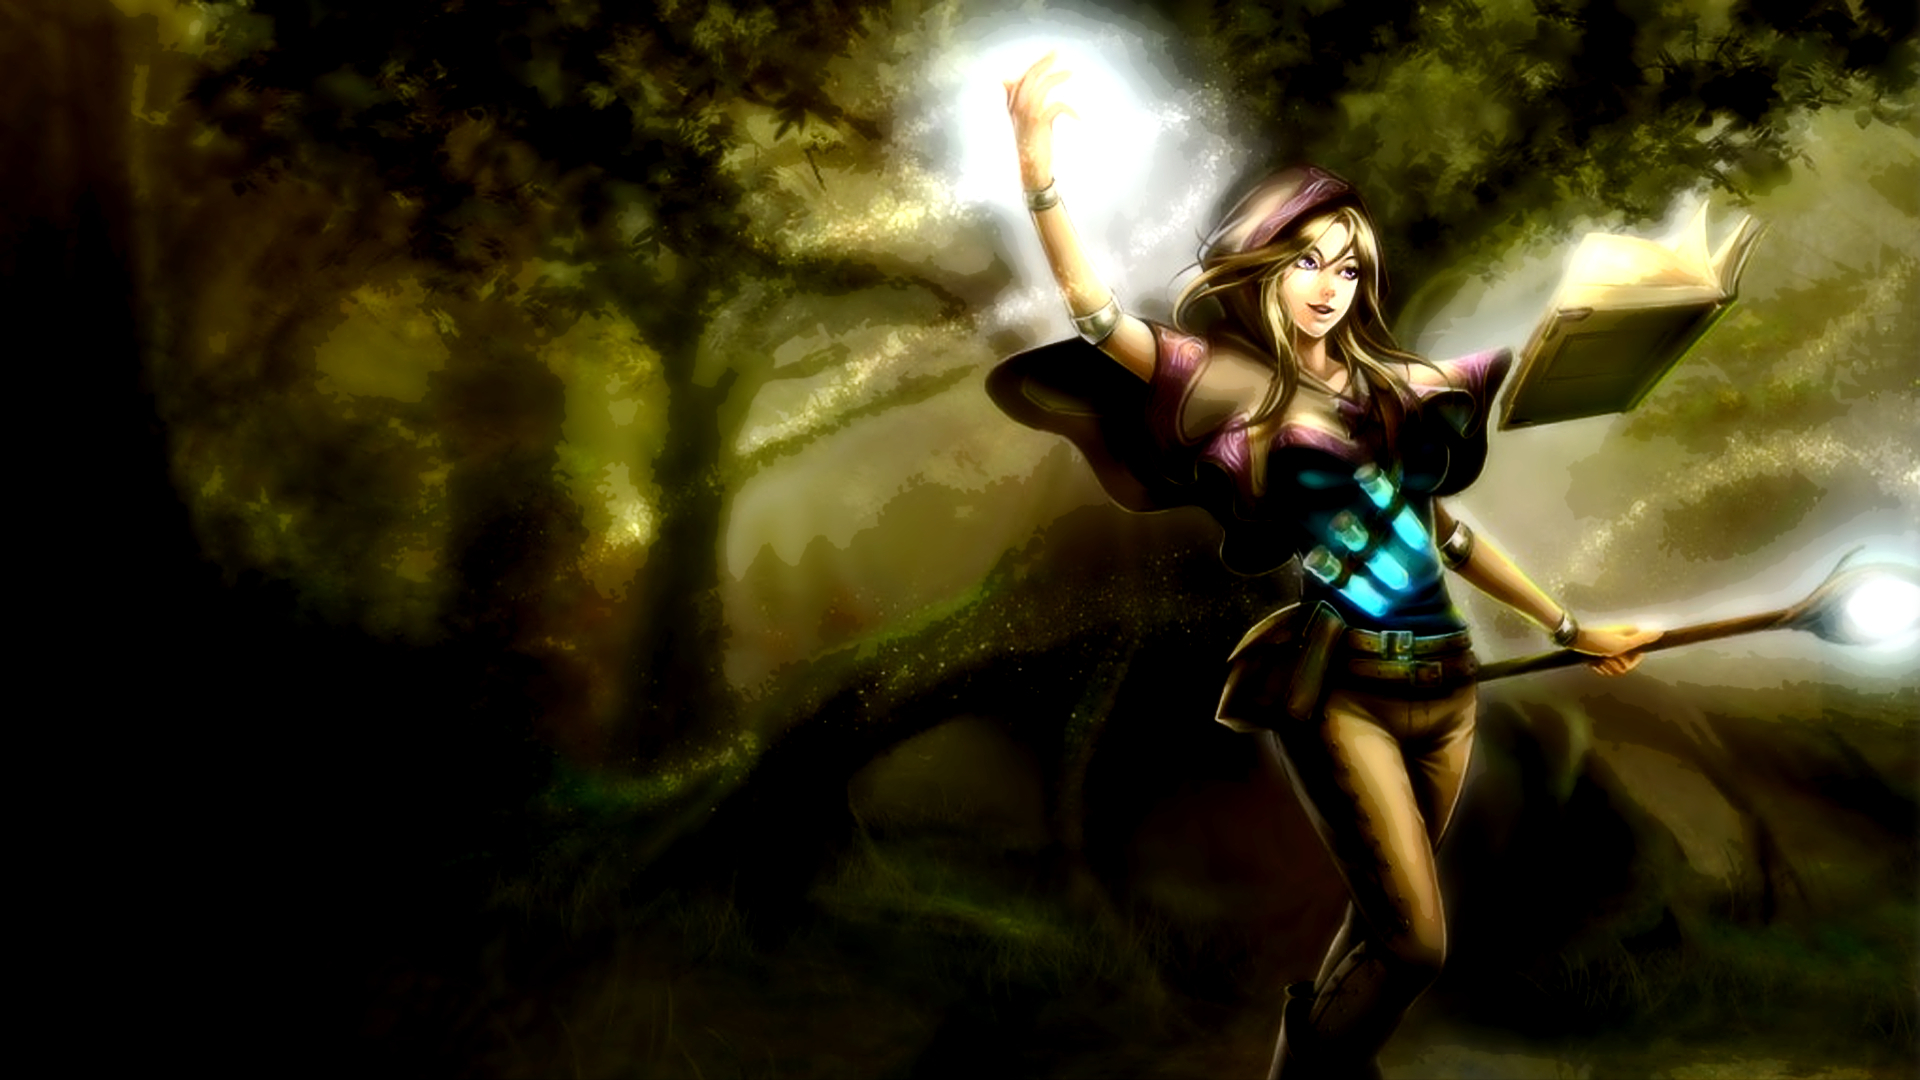 league of Legends fantasy HD Wallpaper